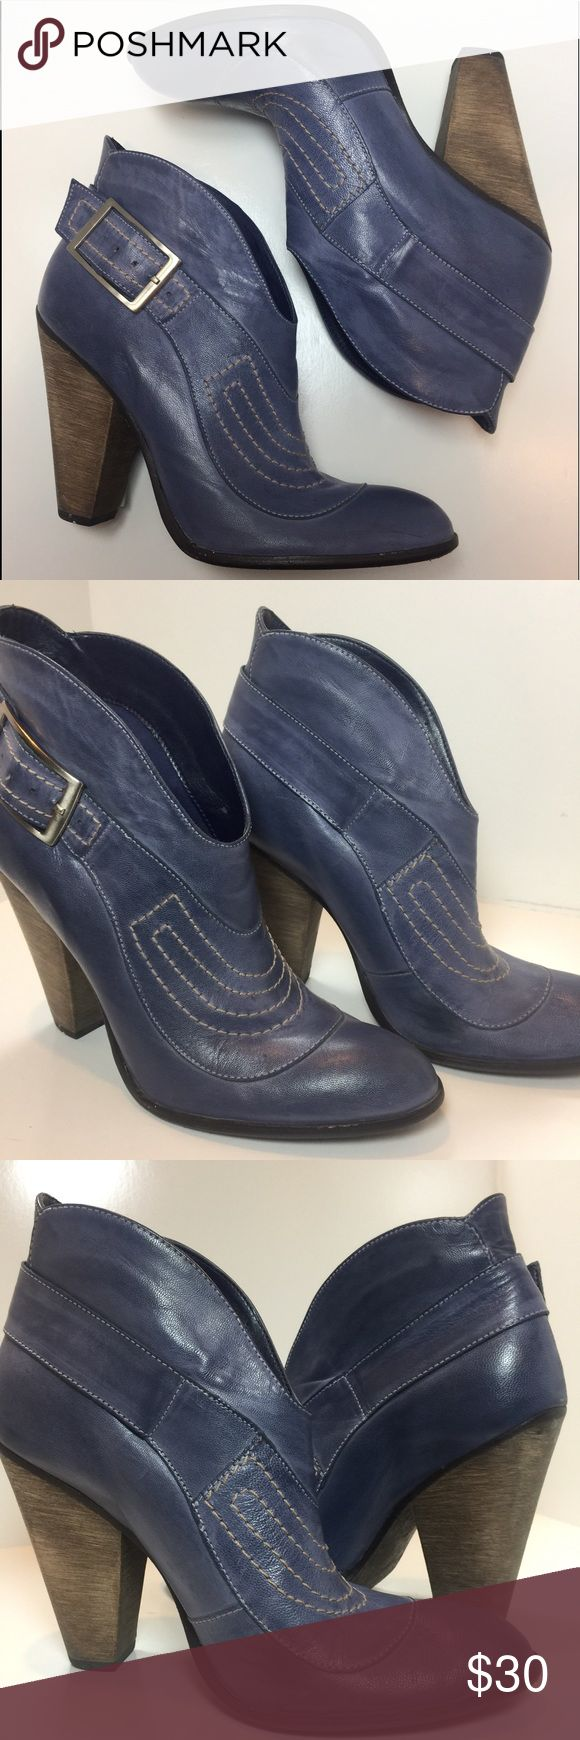 Carlos Santana Bandit Boots Excellent condition.. Leather upper. Smoke free and pet free home. Carlos Santana Shoes Heeled Boots